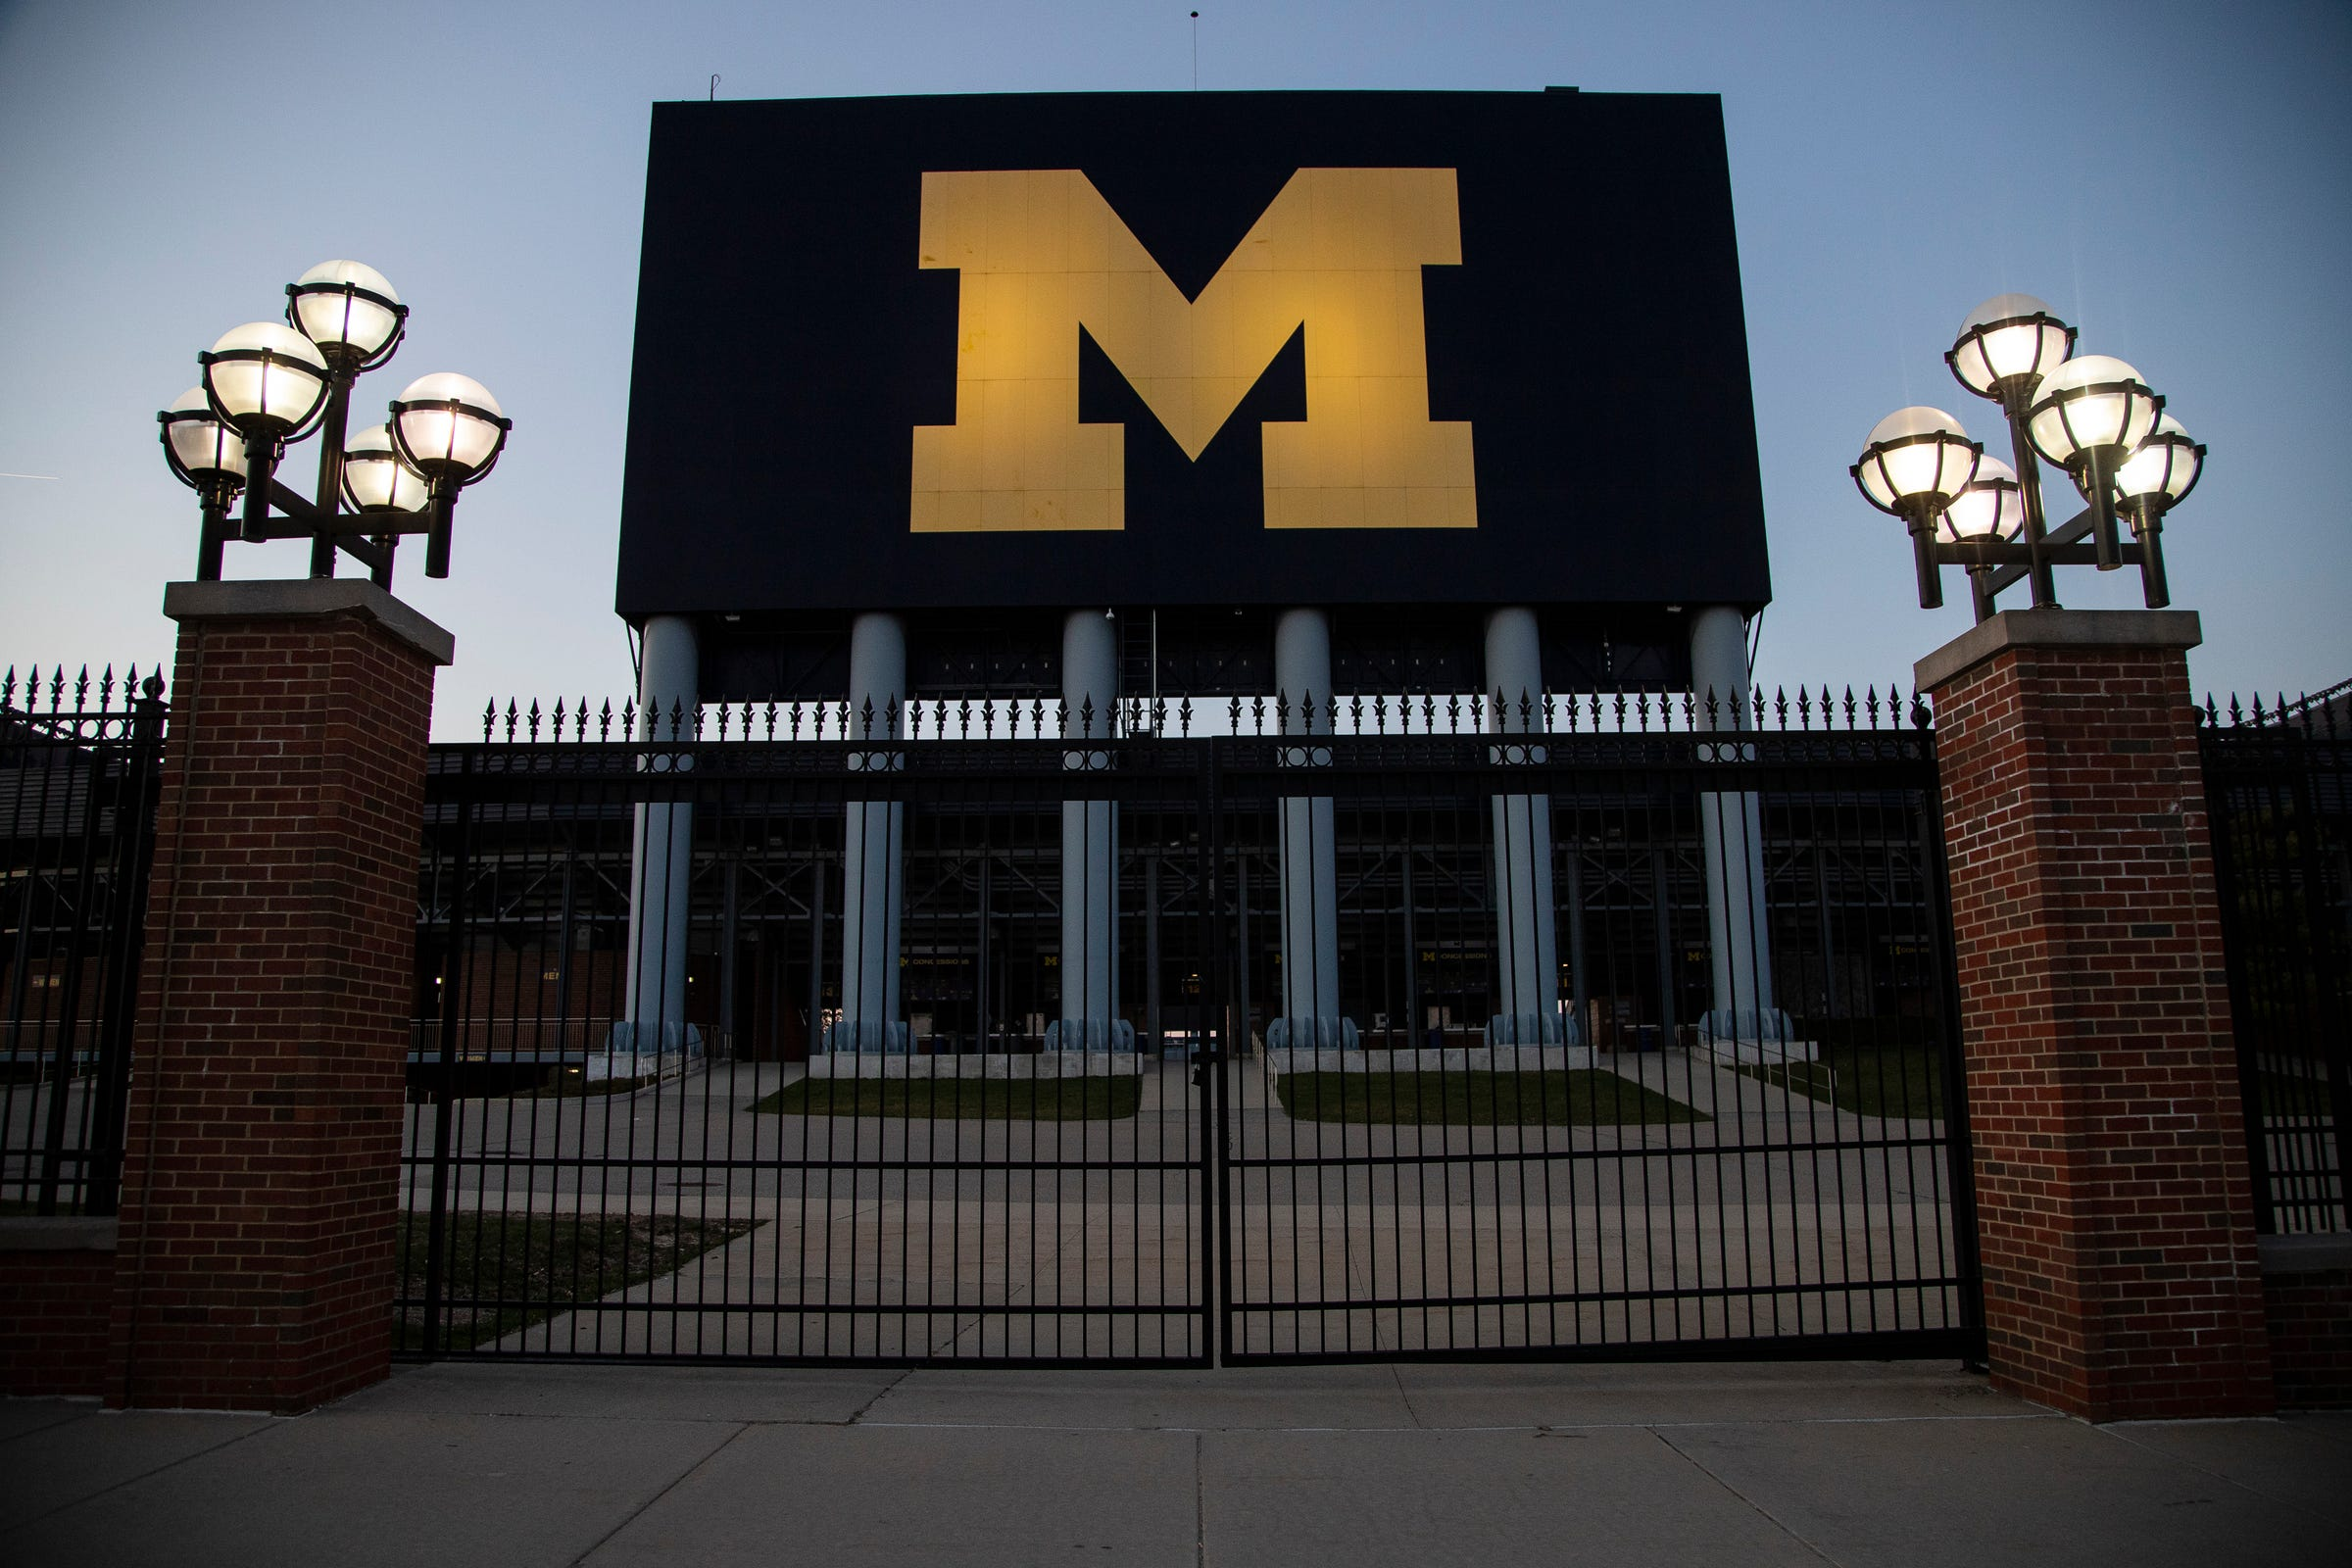 Stay home order for Michigan students won't prevent Wolverines from practicing, playing in games